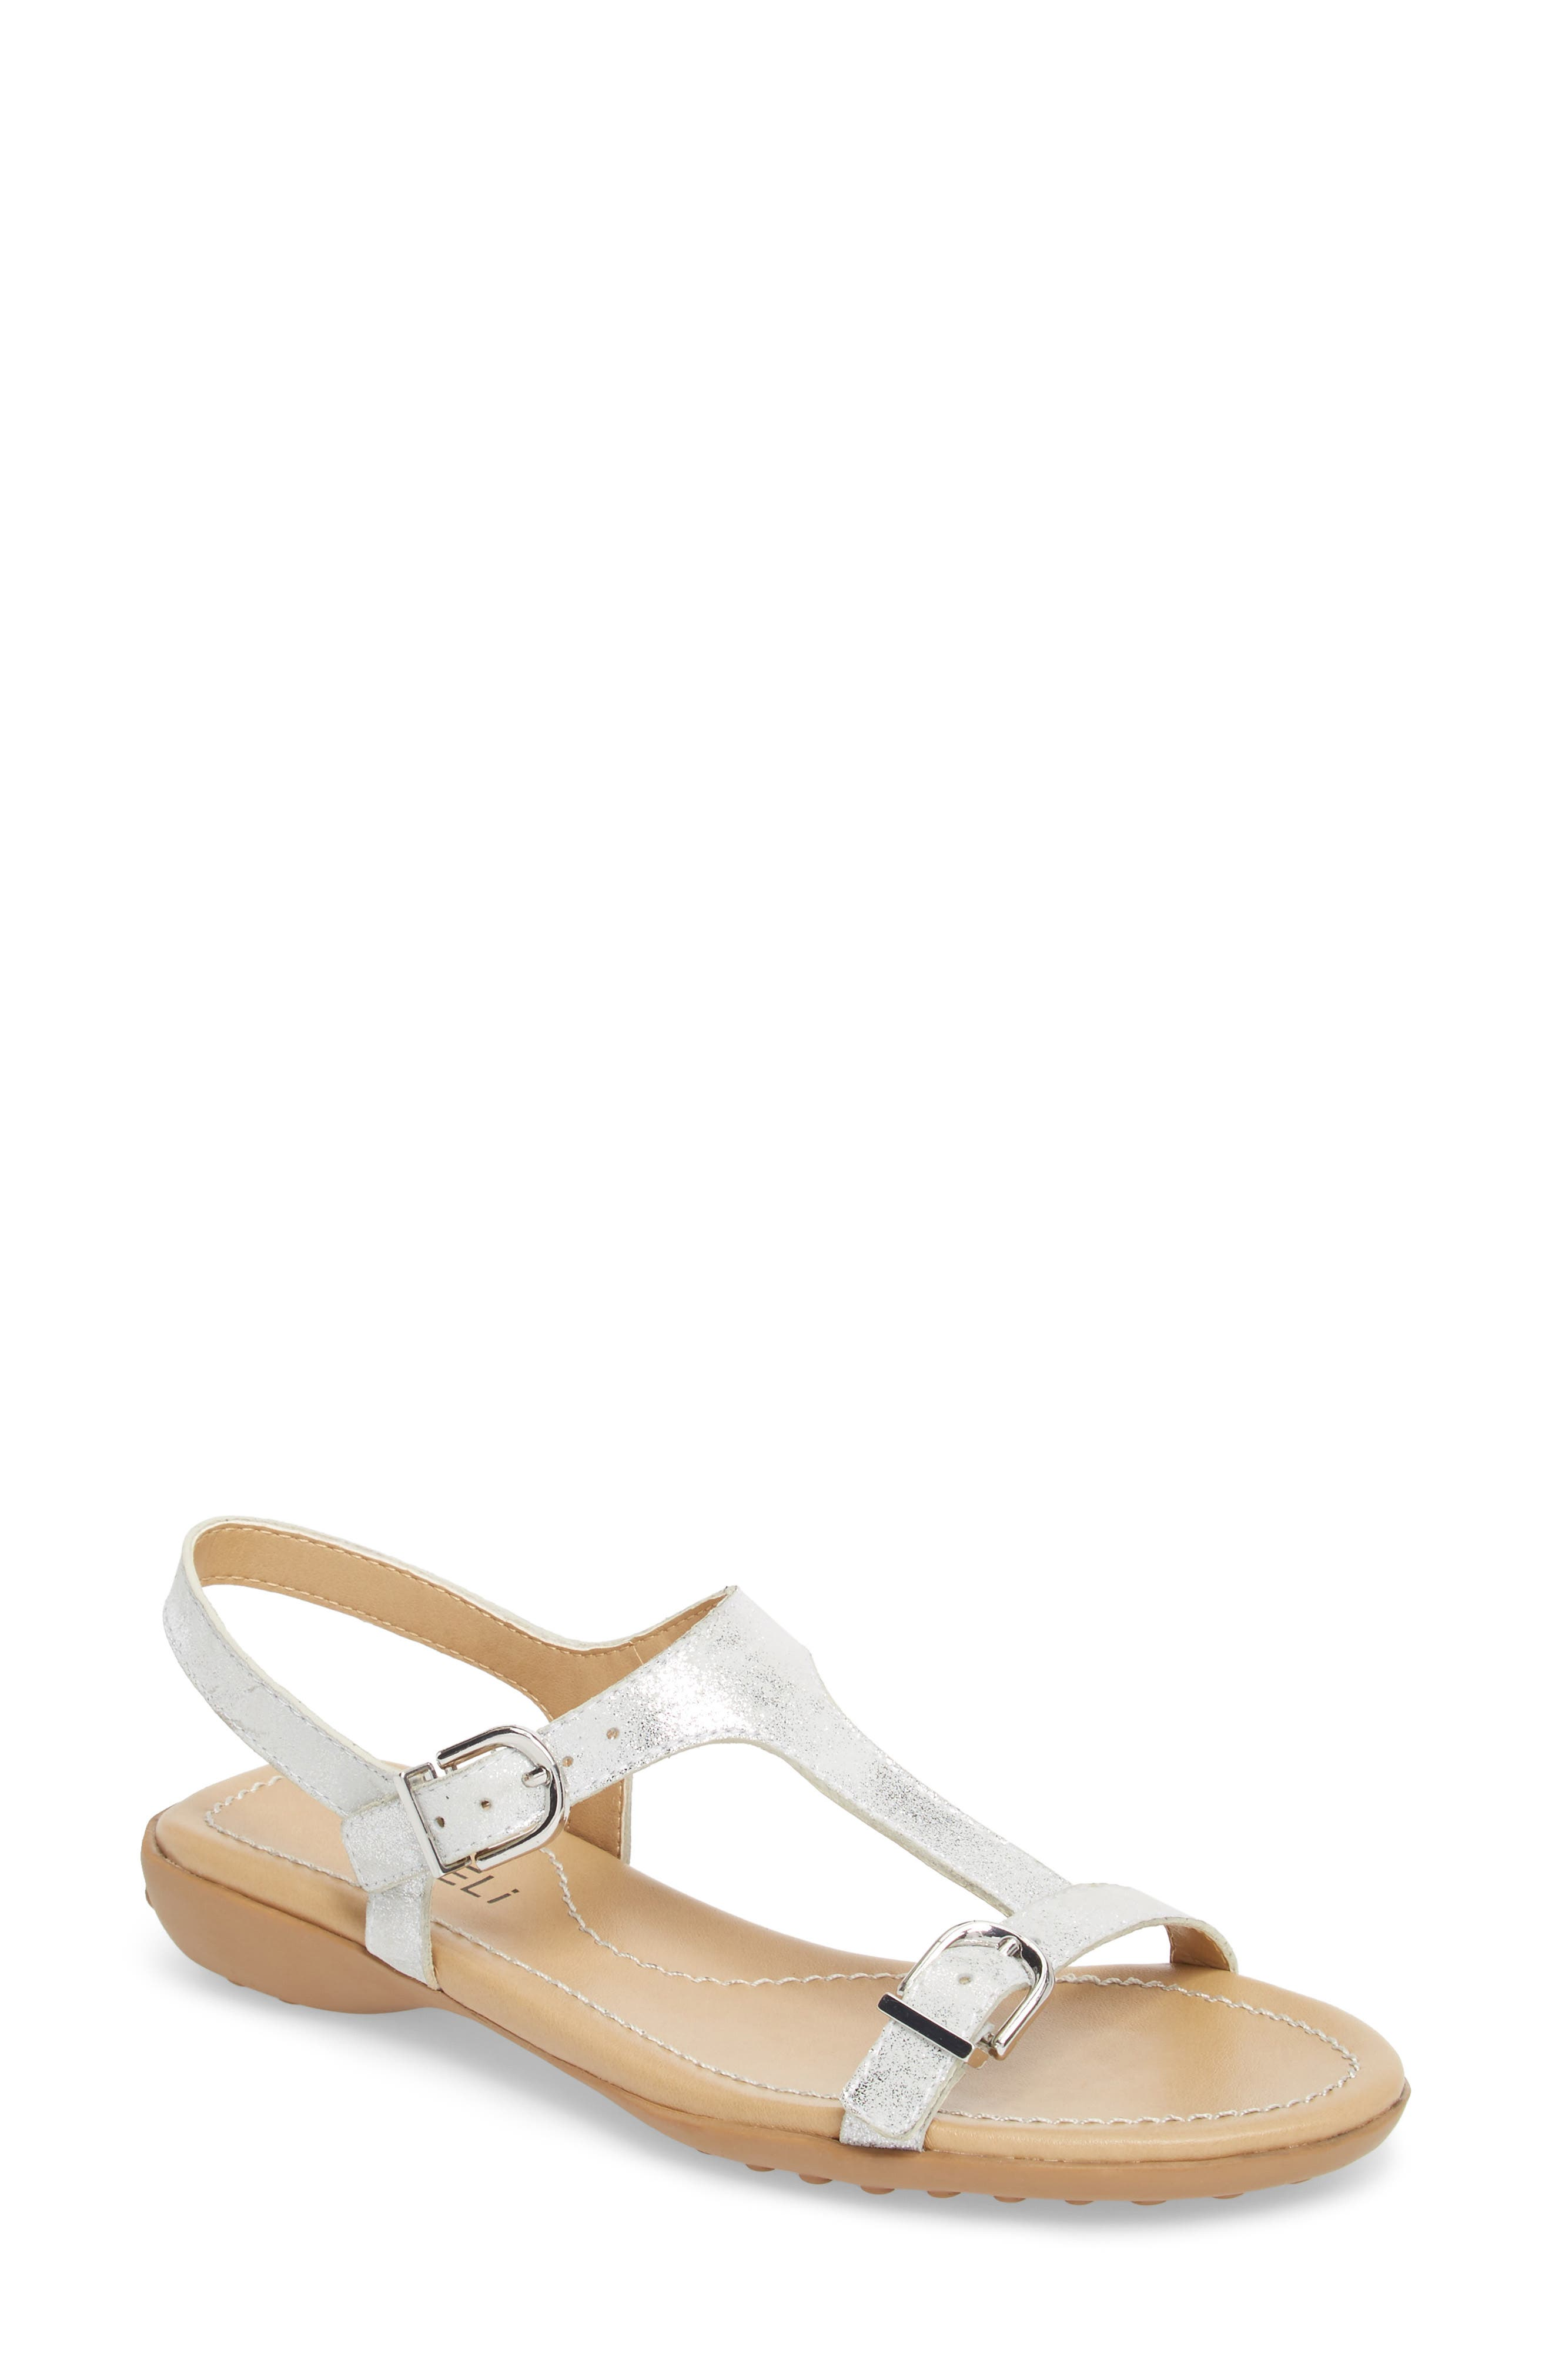 Taletha T-Strap Sandal,                             Main thumbnail 1, color,                             Silver Printed Suede